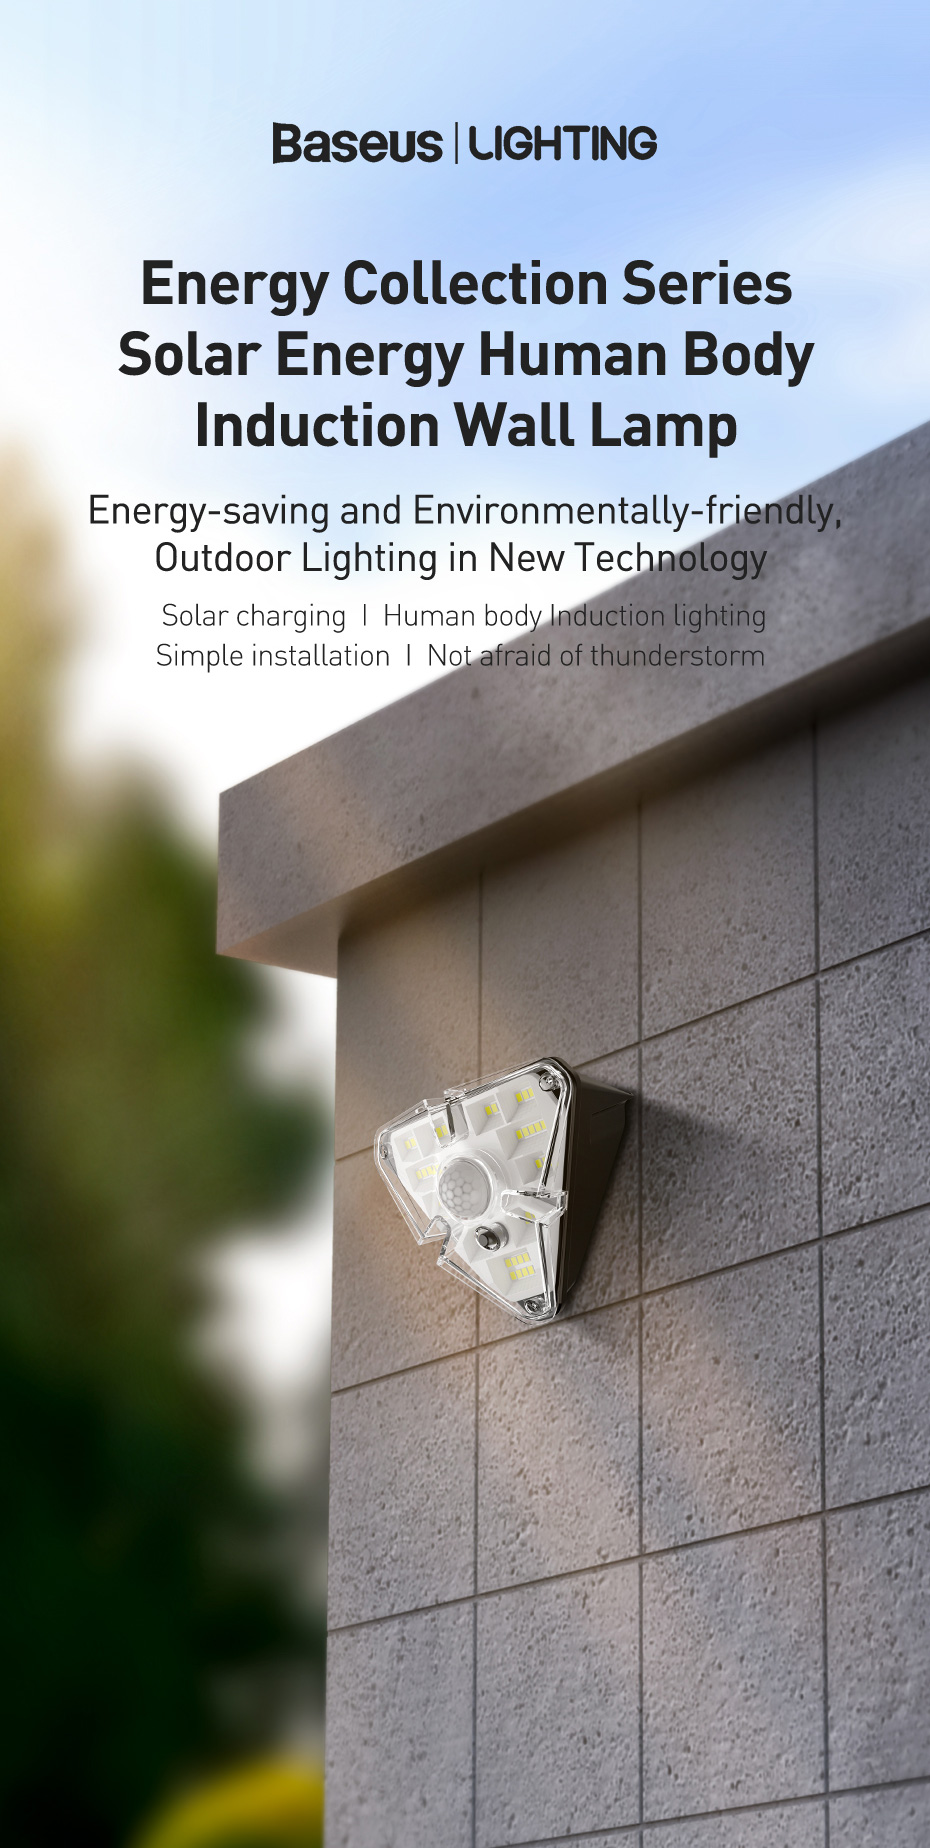 Baseus Outdoor Waterproof LED Solar Light With Motion Sensor 6 Baseus Outdoor Waterproof LED Solar Light With Motion Sensor Love Me Some Gadgets